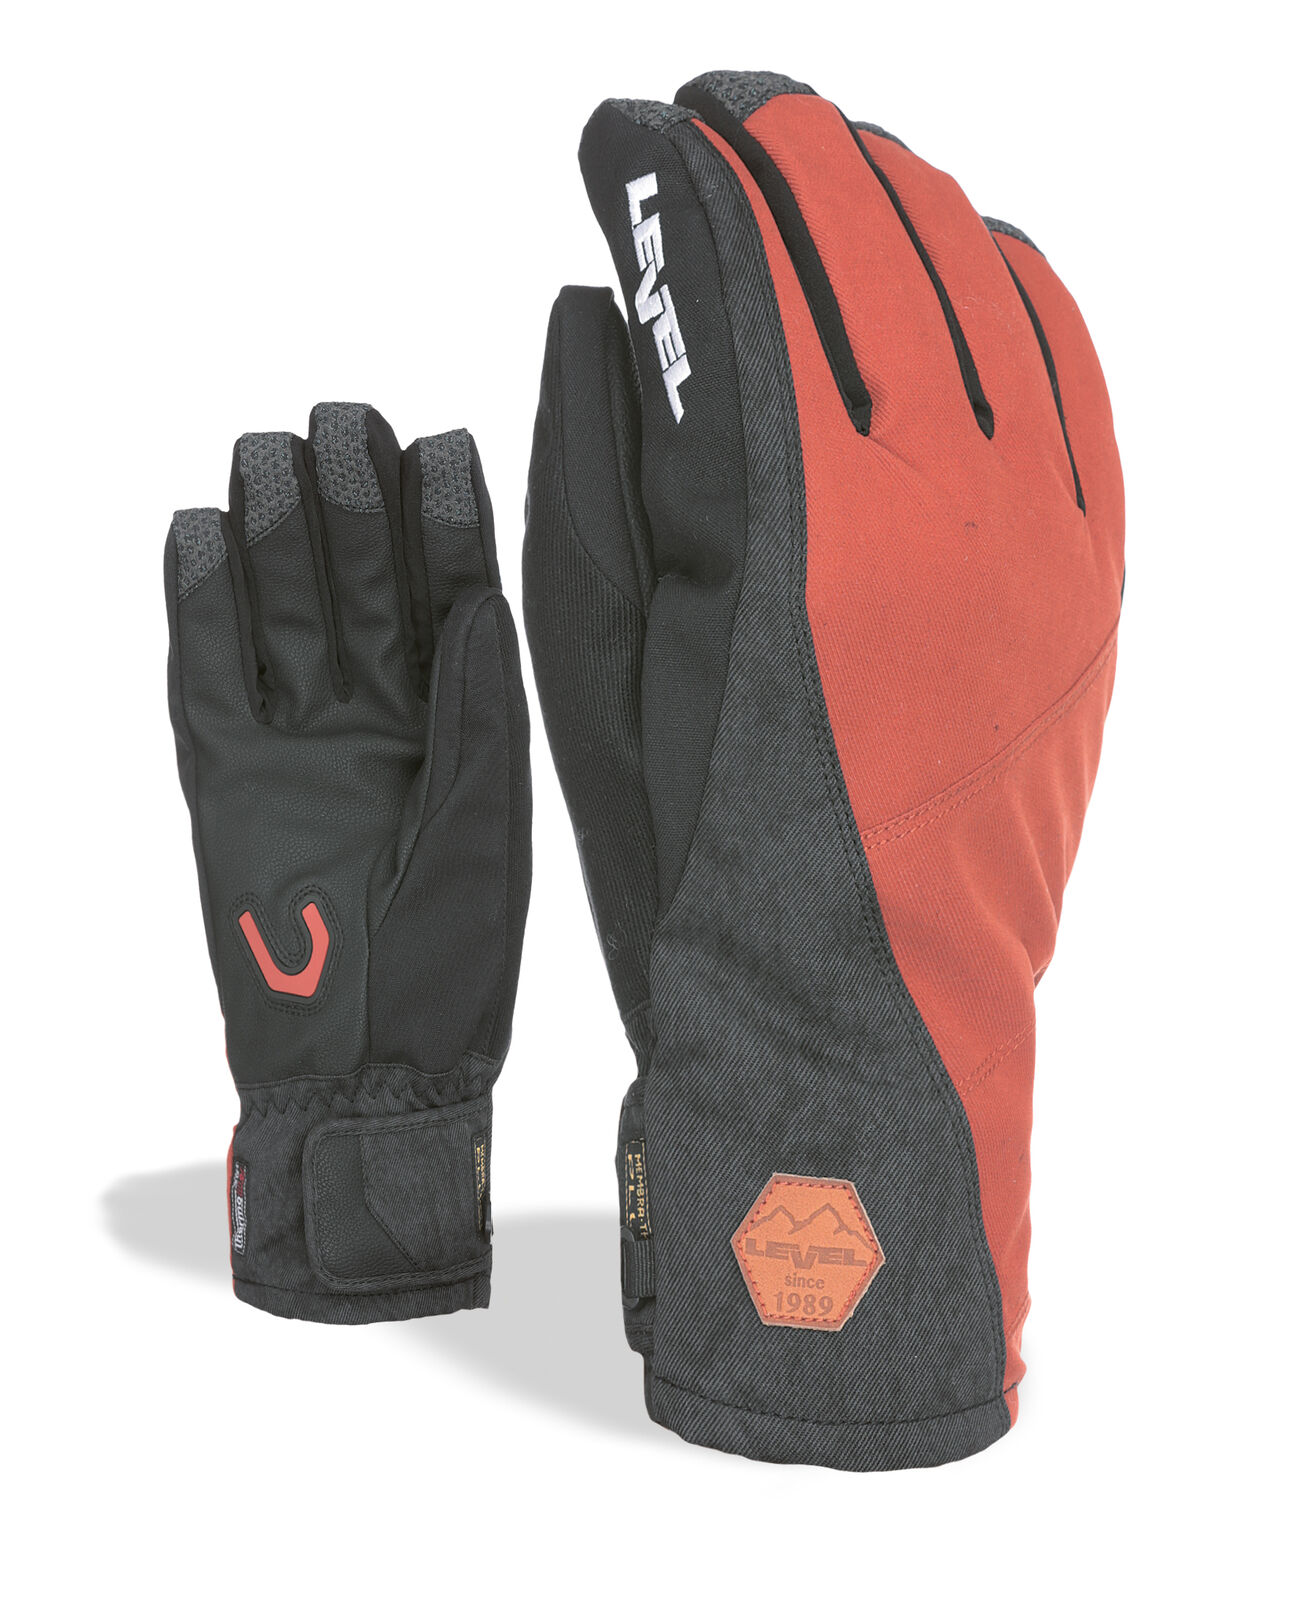 Level Guantes Matrix Duo brown Impermeable Transpirable Cálidos